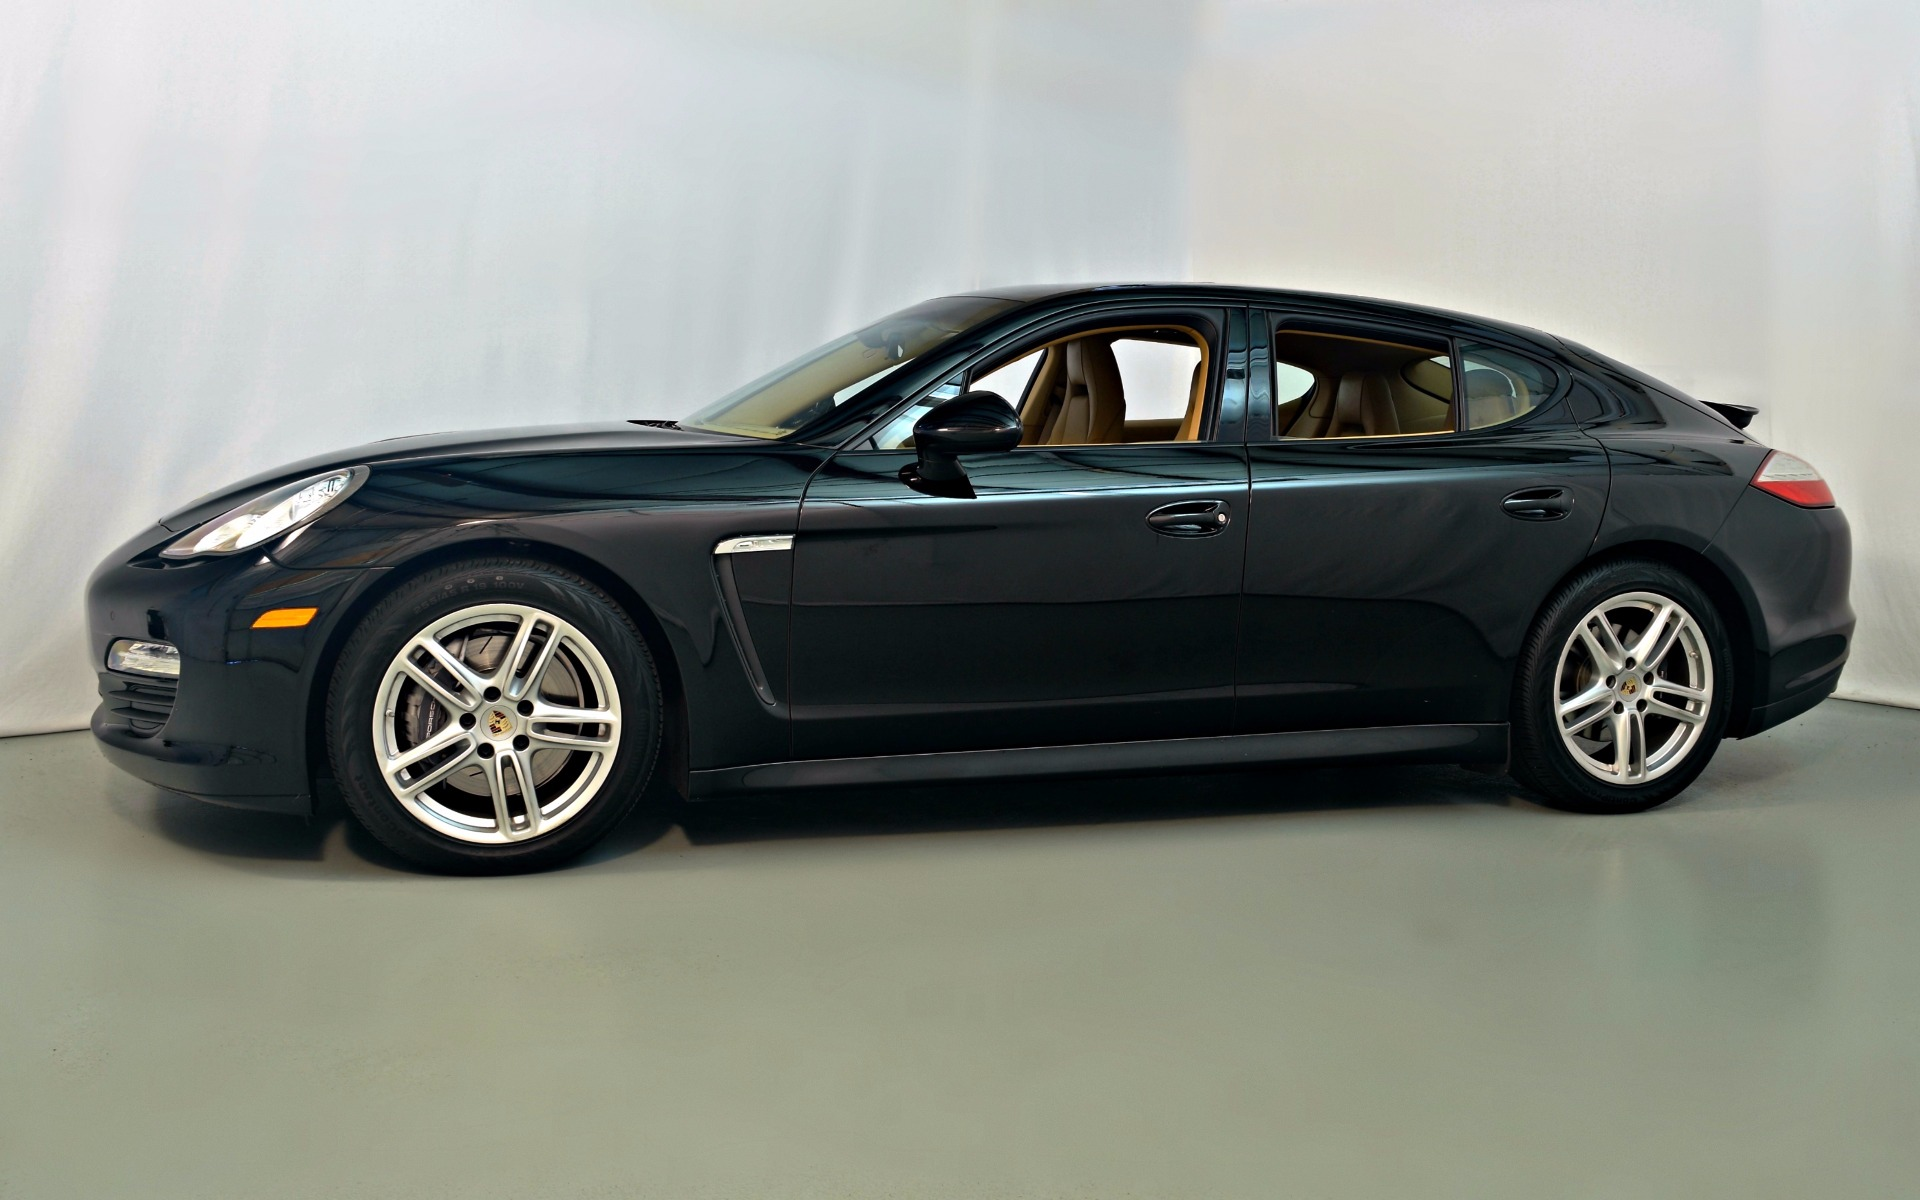 2012 porsche panamera for sale in norwell ma 014563 mclaren boston. Black Bedroom Furniture Sets. Home Design Ideas